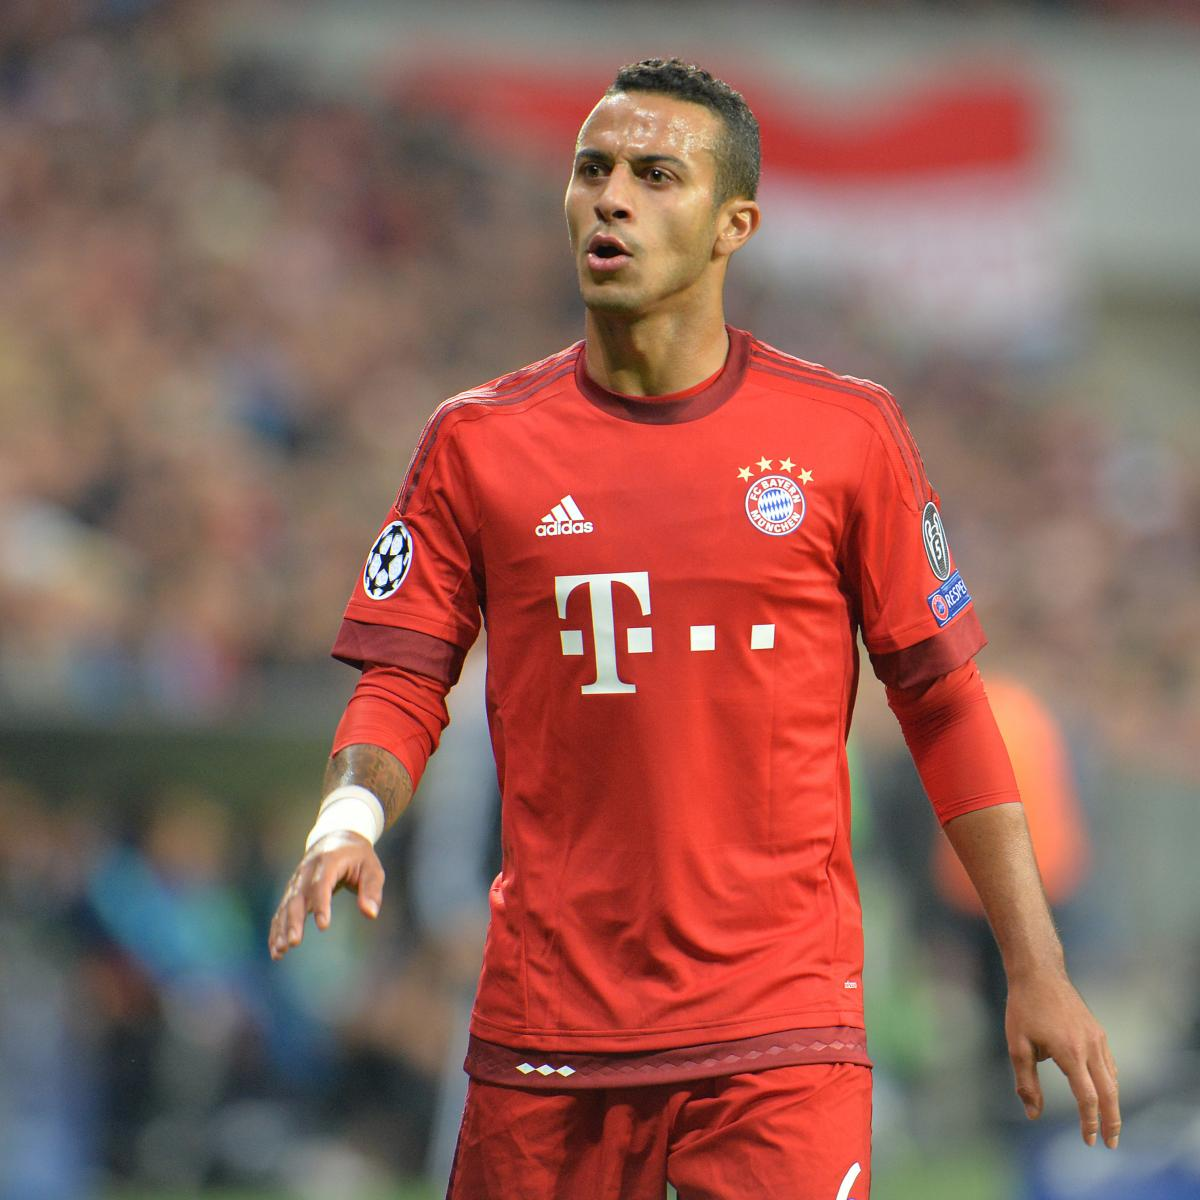 Thiago scores, comes off with injury (update) - Bavarian ...